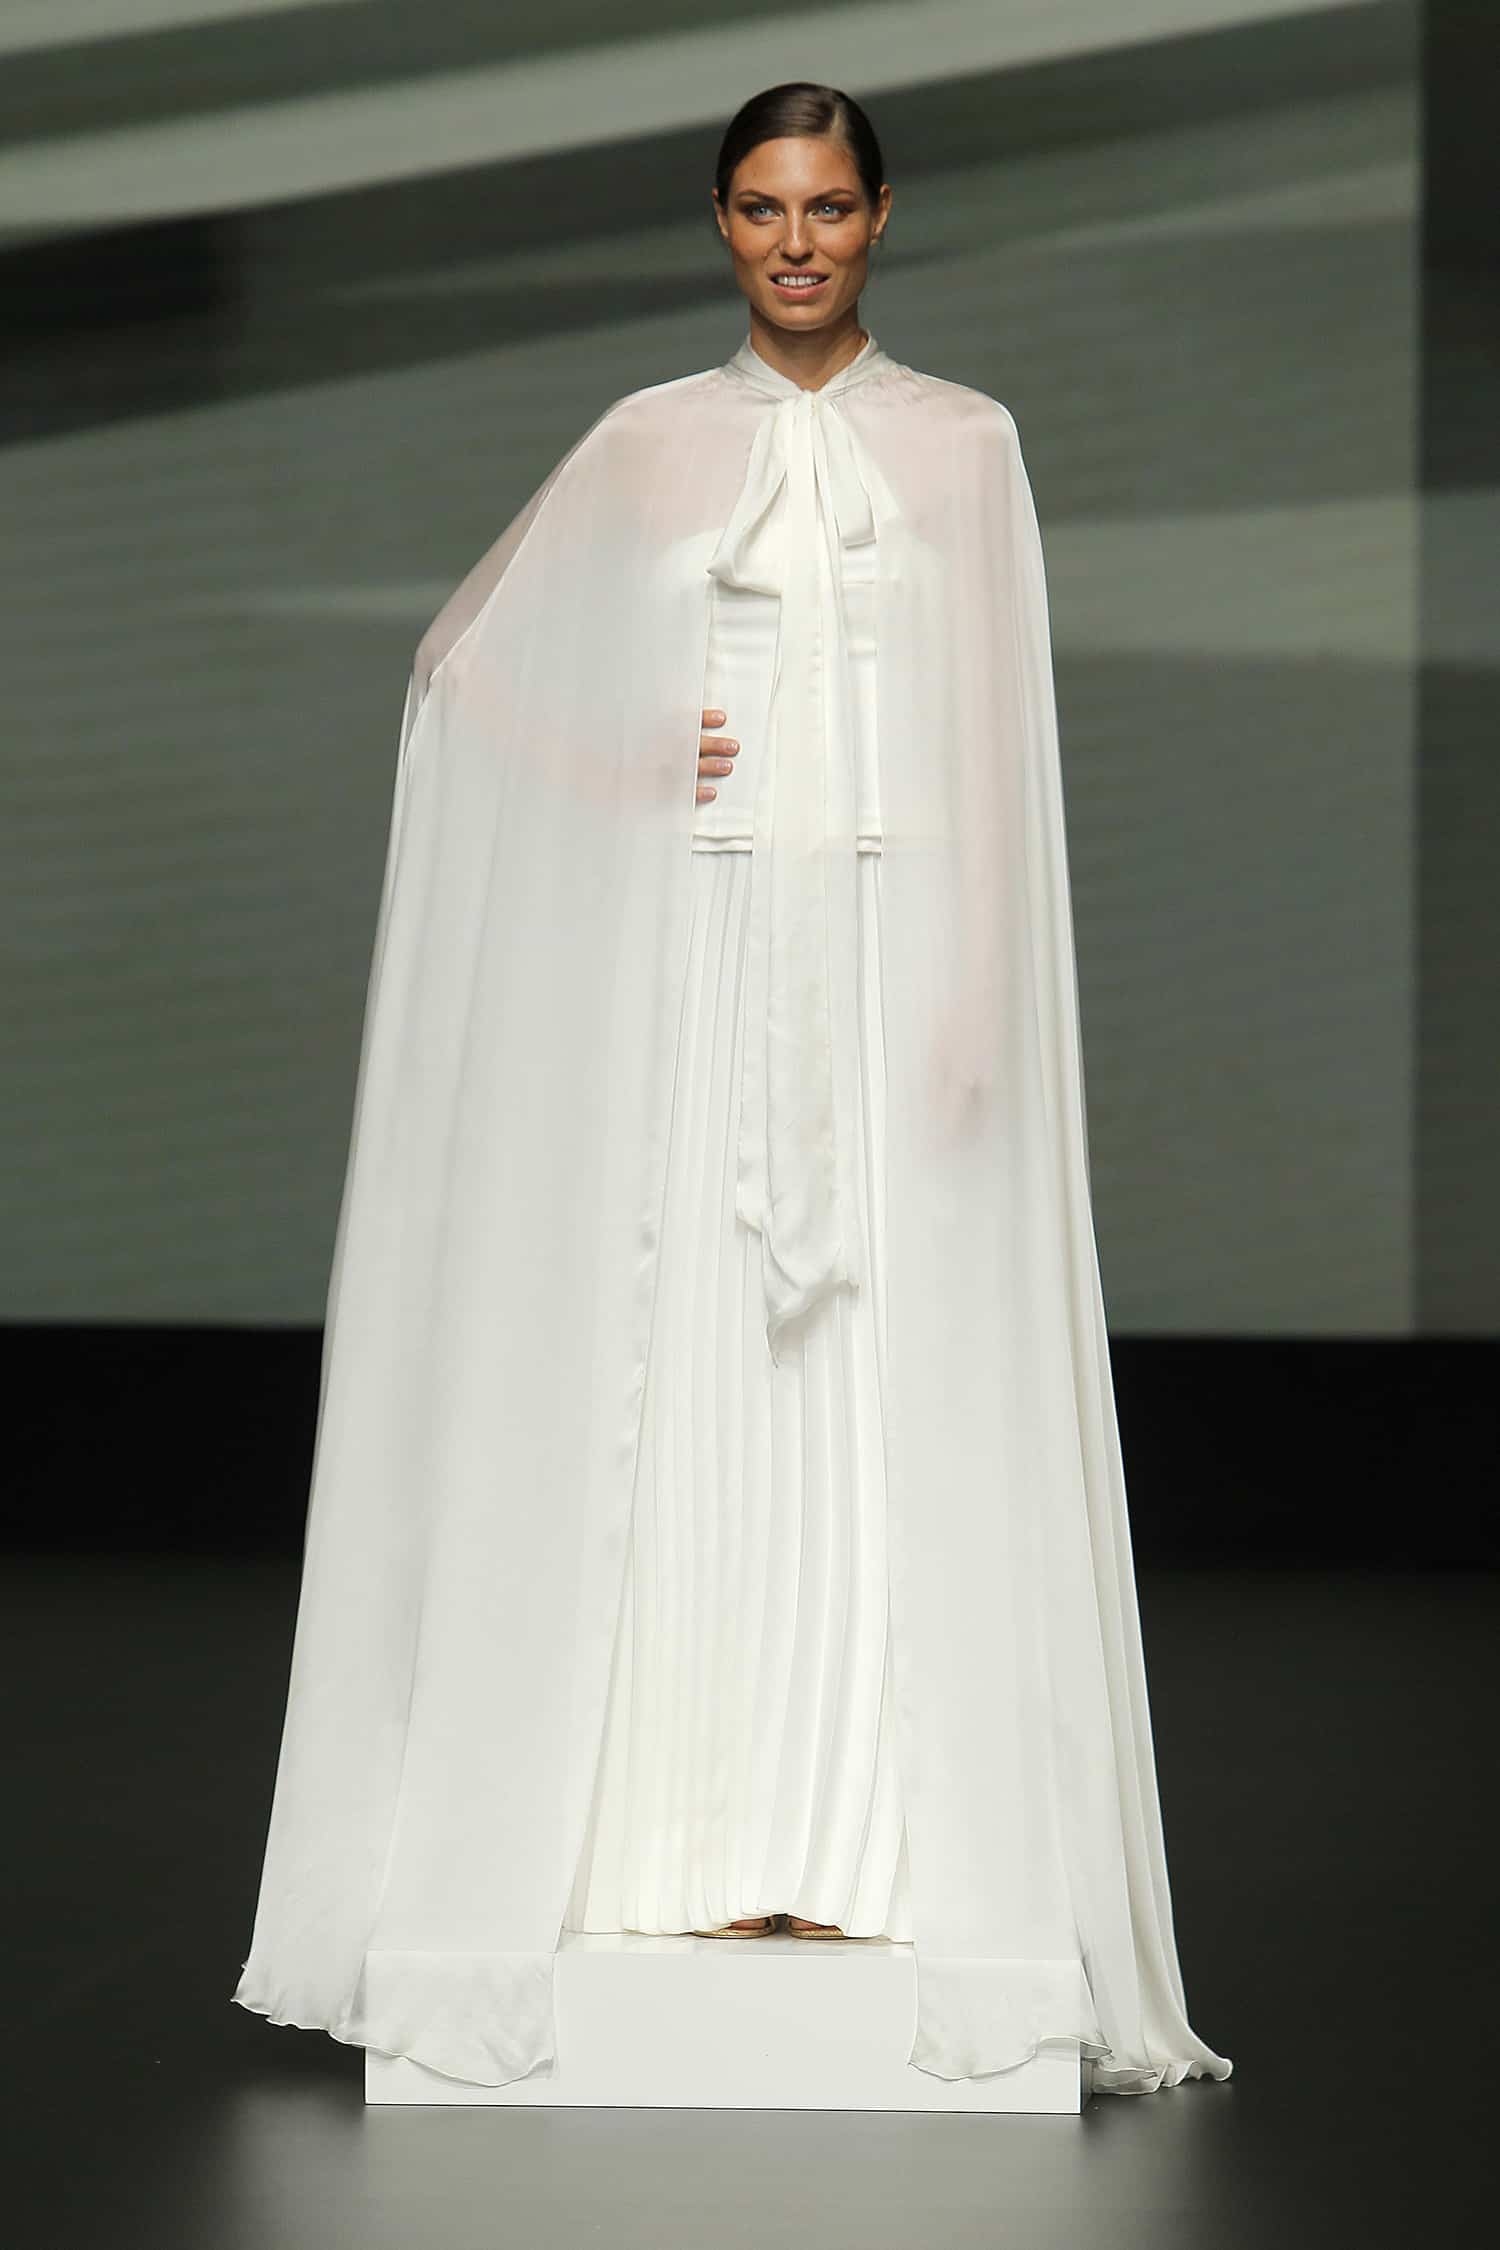 a wedding dress with cape by Marylise